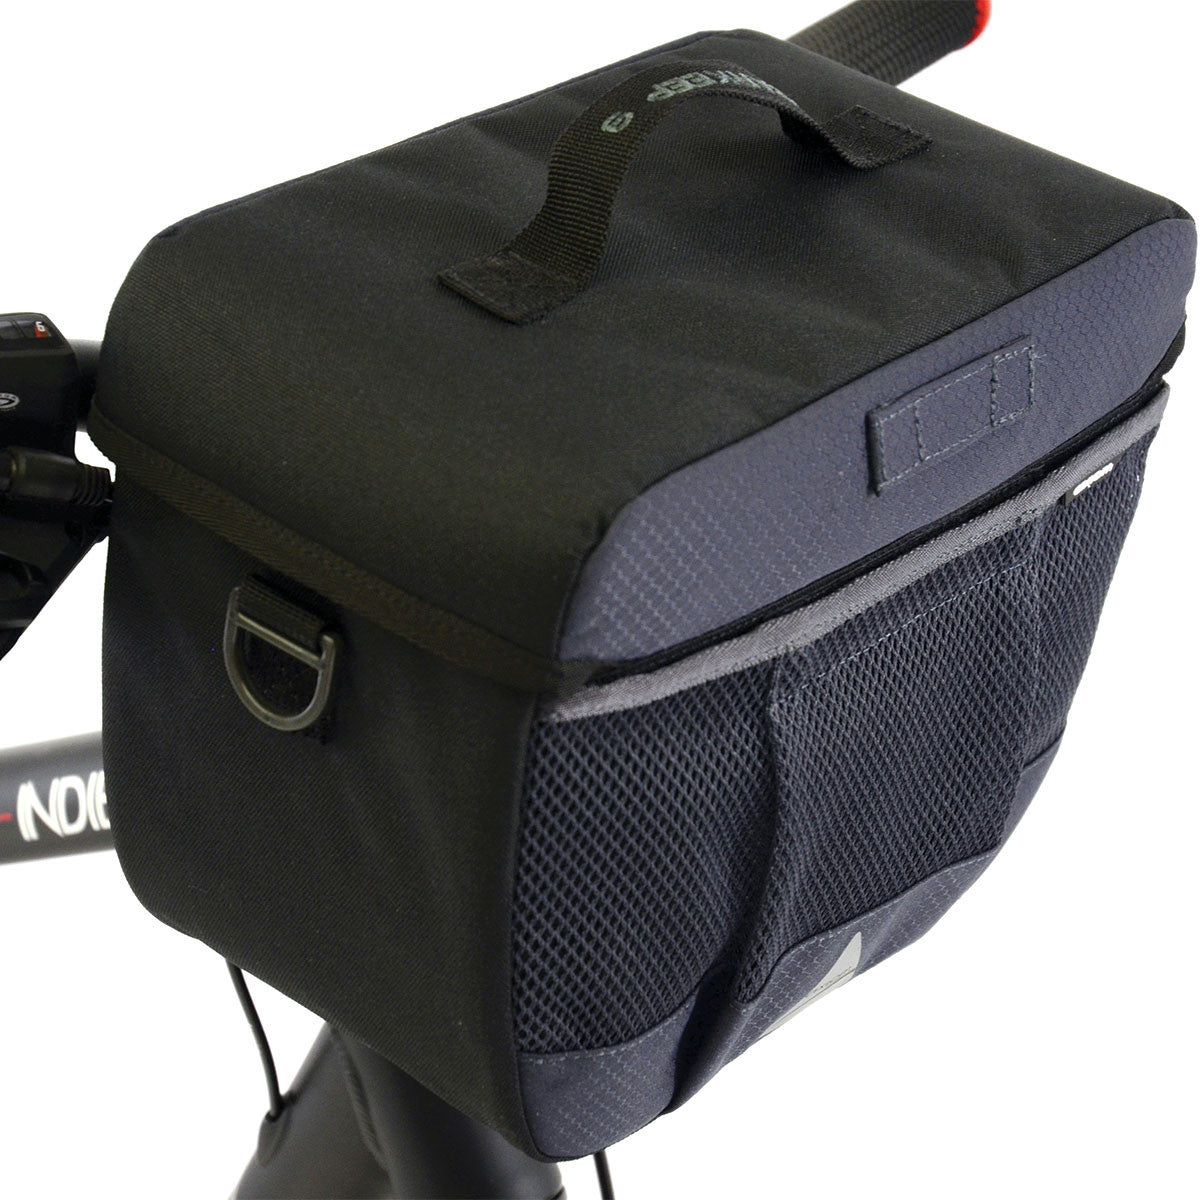 Axiom BARKEEP 9 handelbar bag